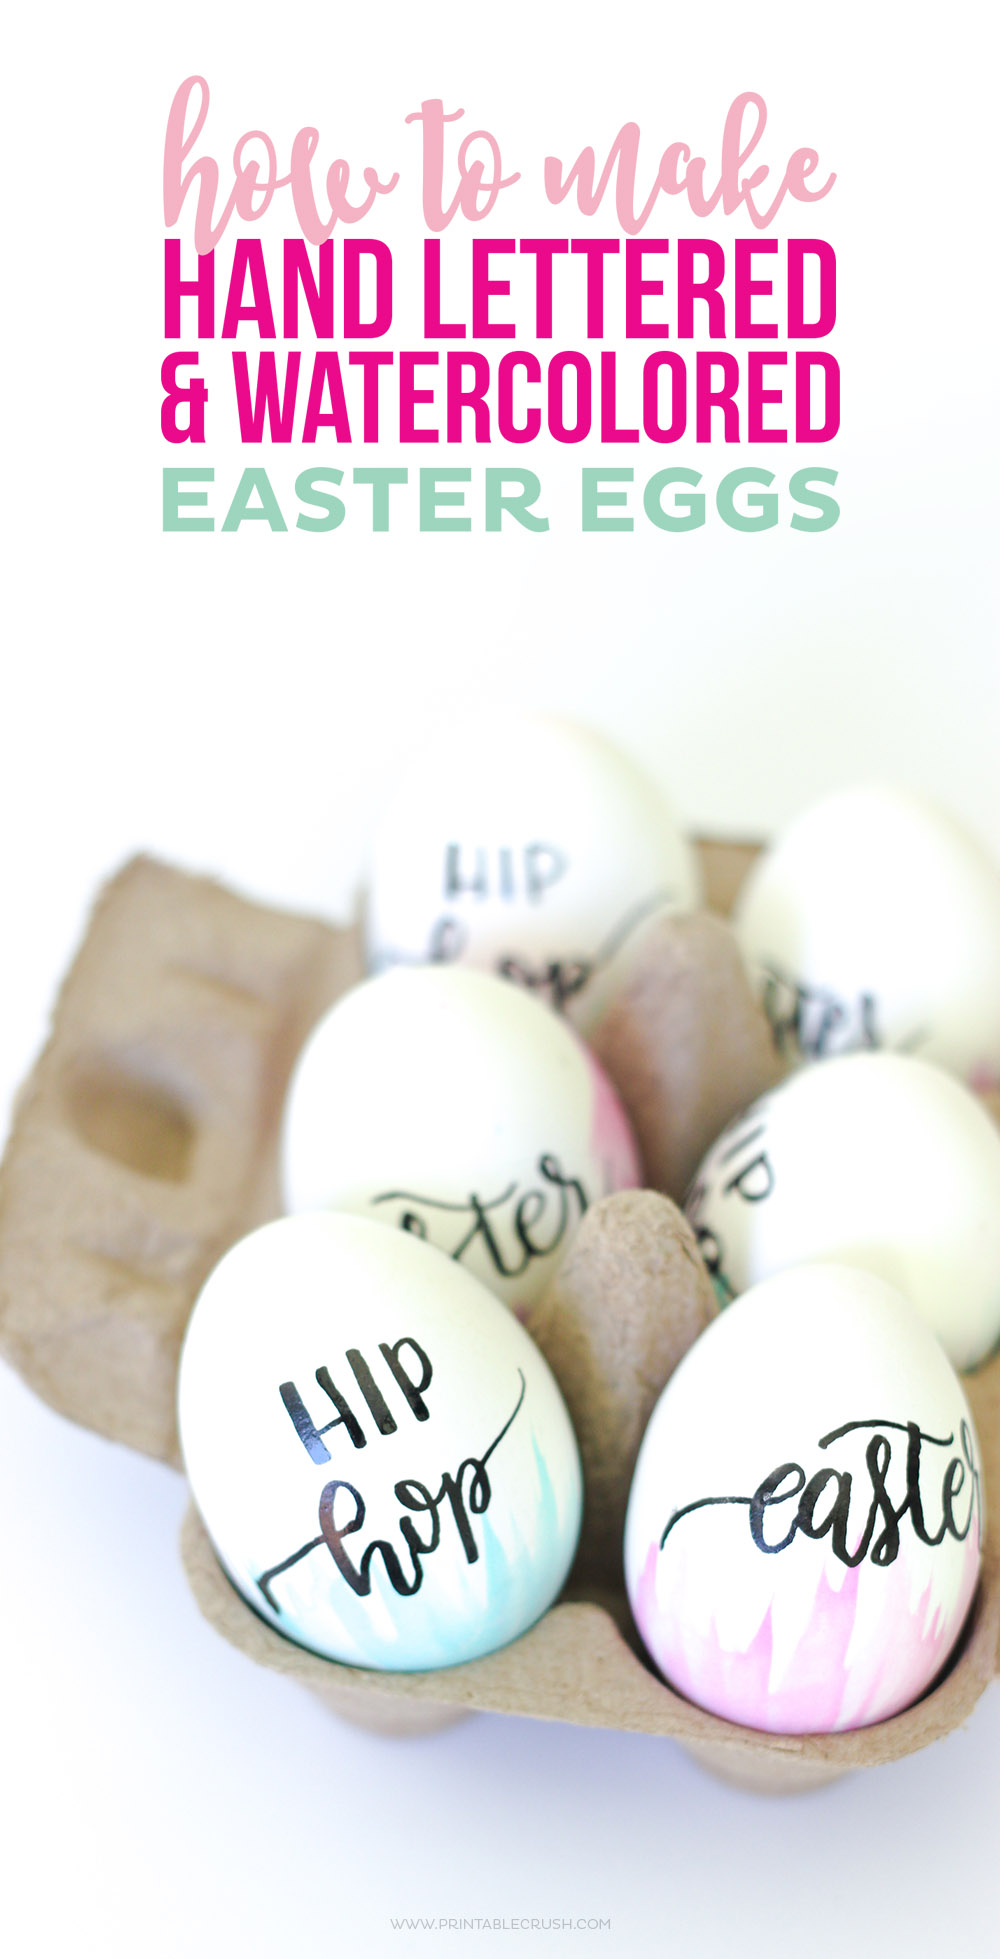 Hand lettered & water colored easter eggs